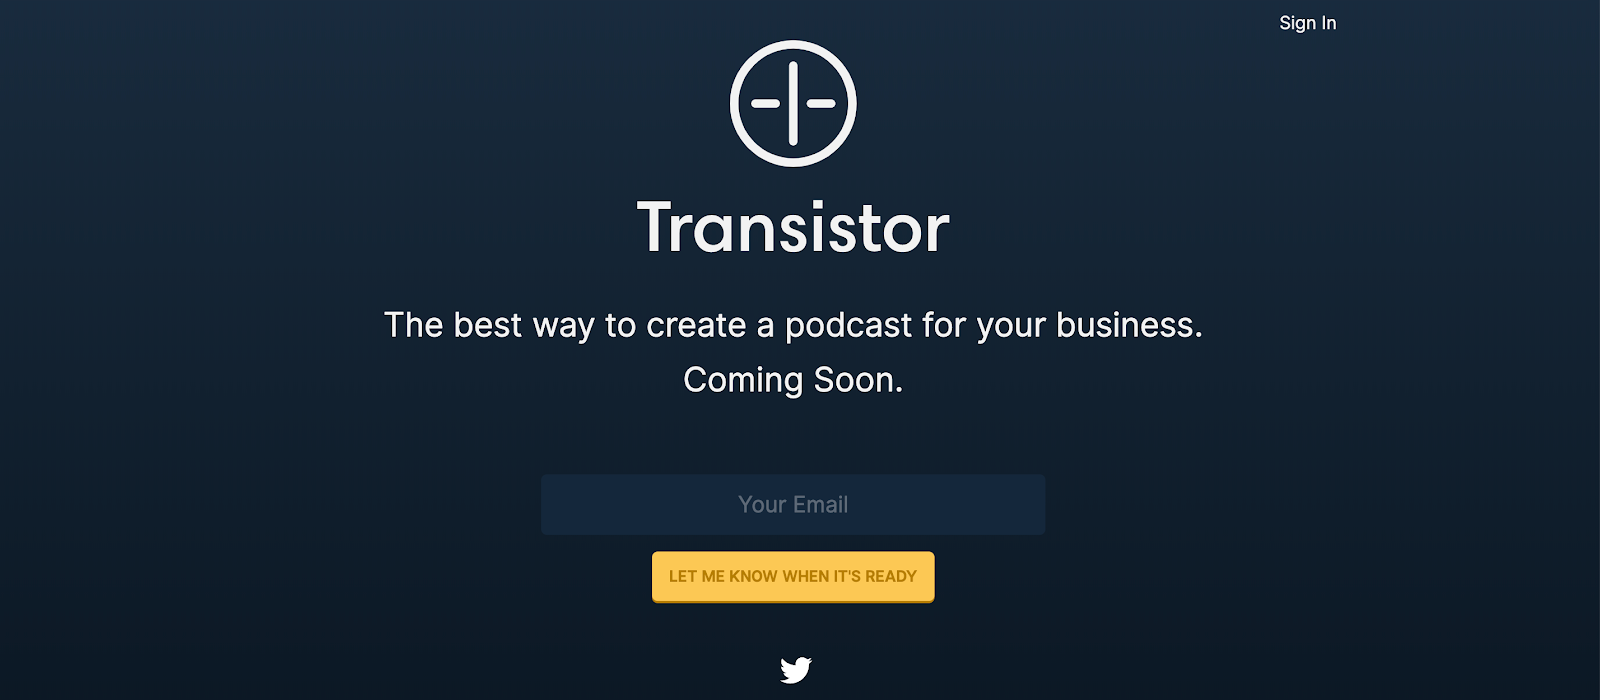 Coming Soon Page: Screenshot of Transistor coming soon page